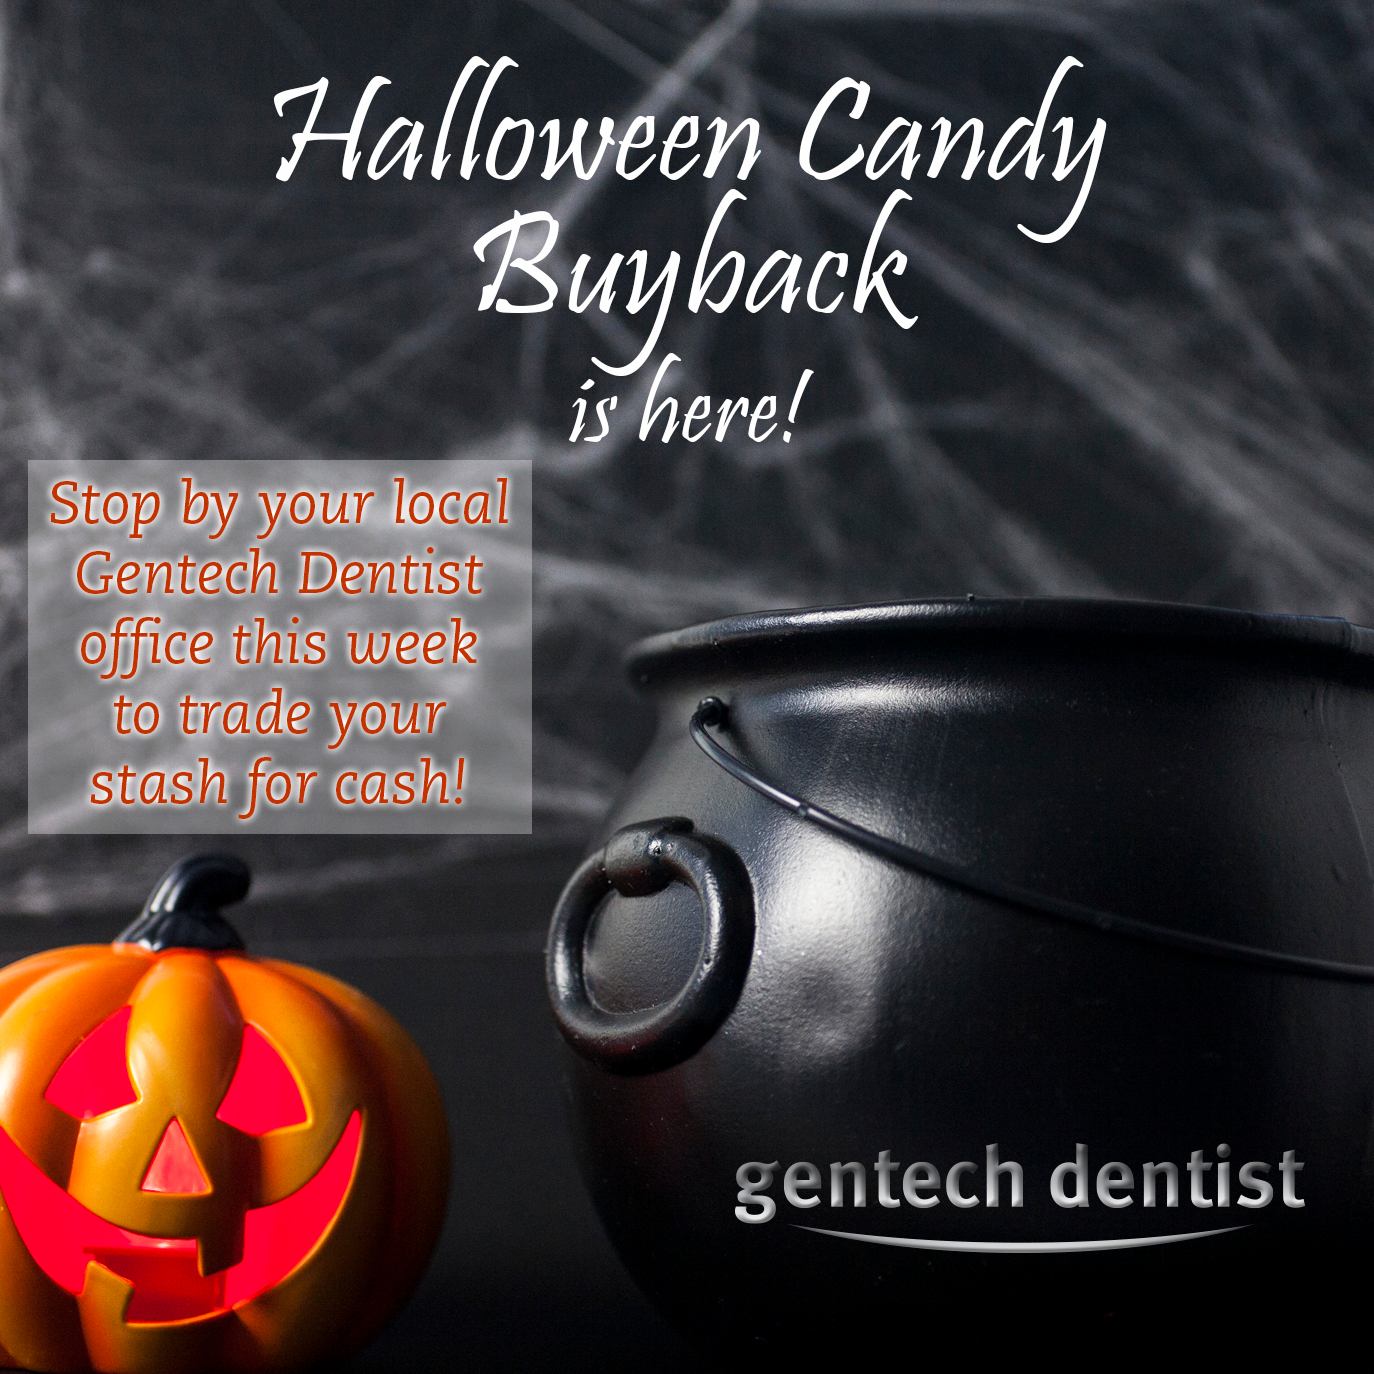 Gentech Dentist will buy your halloween candy for cash!